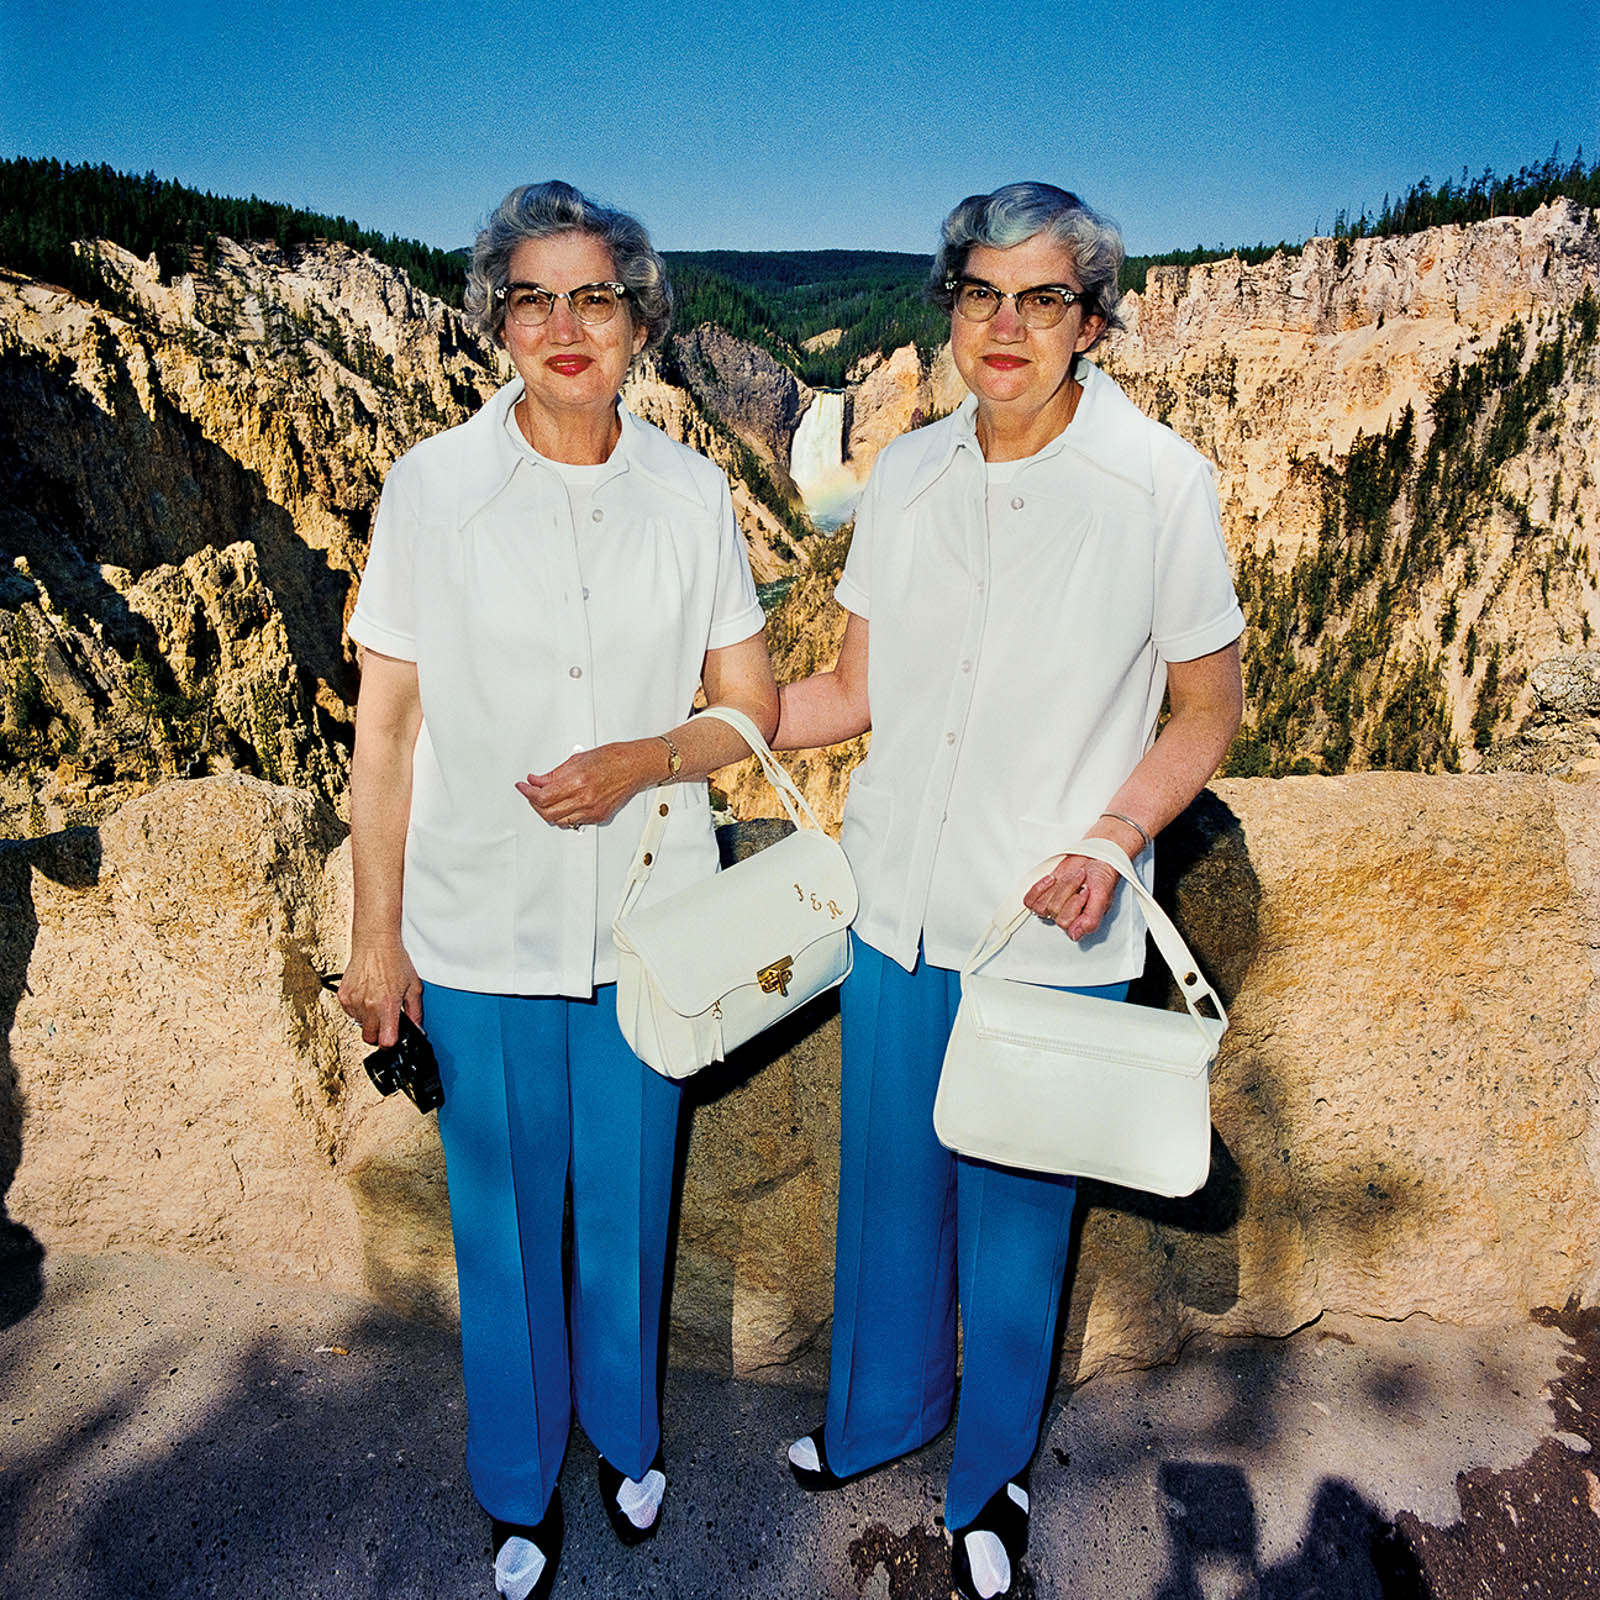 Twins at Lower Falls, Yellowstone National Park, Wyoming 1980